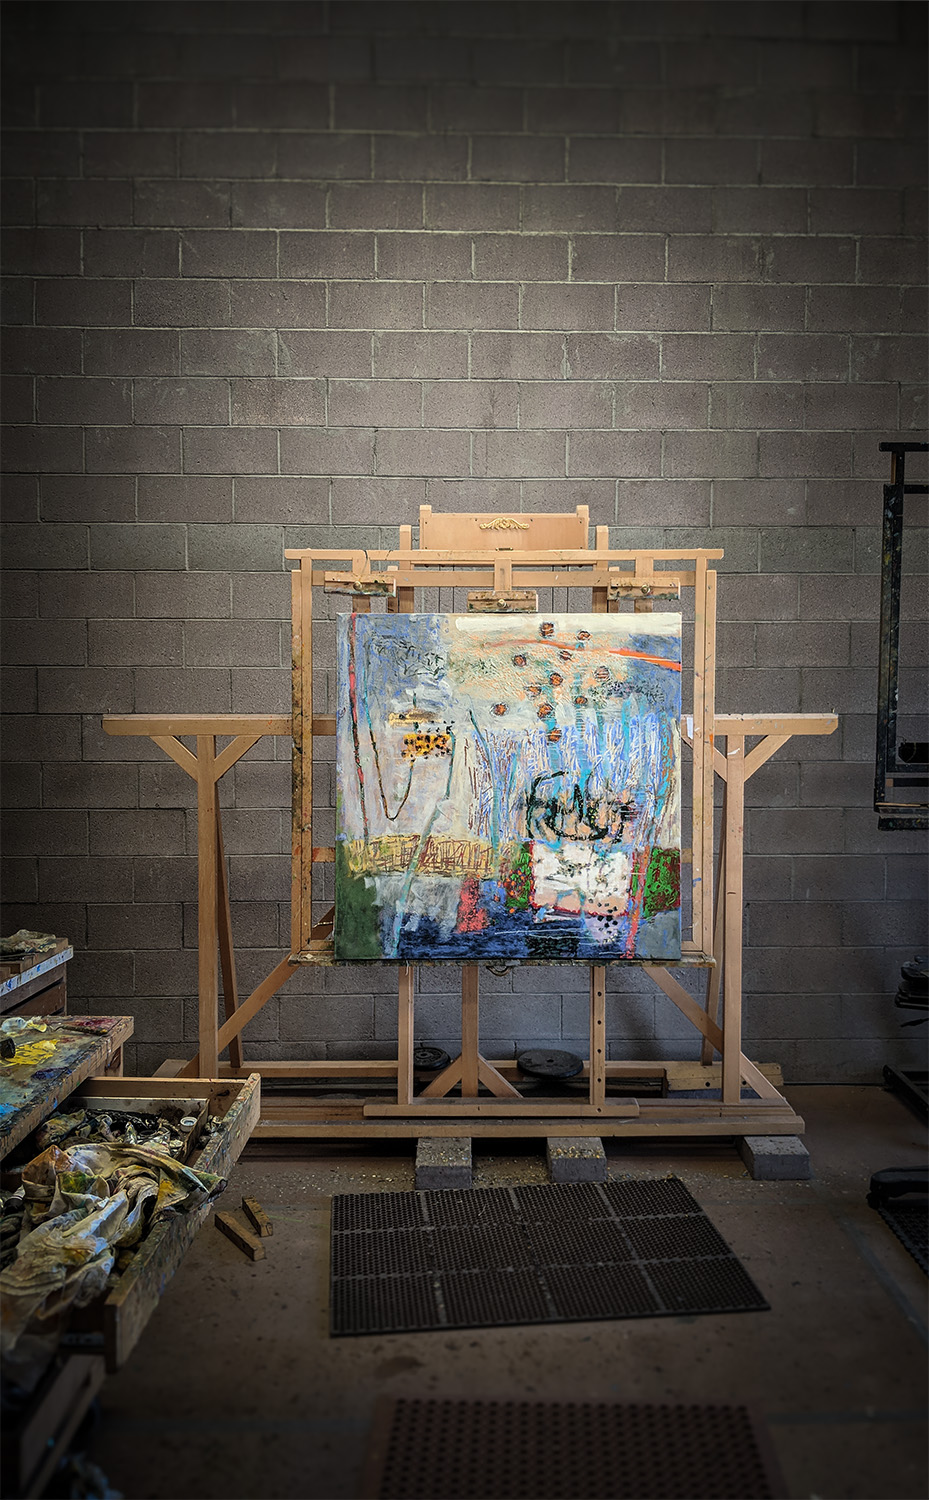 "48 x 48"" oil on canvas in progress in Santa Fe, NM"